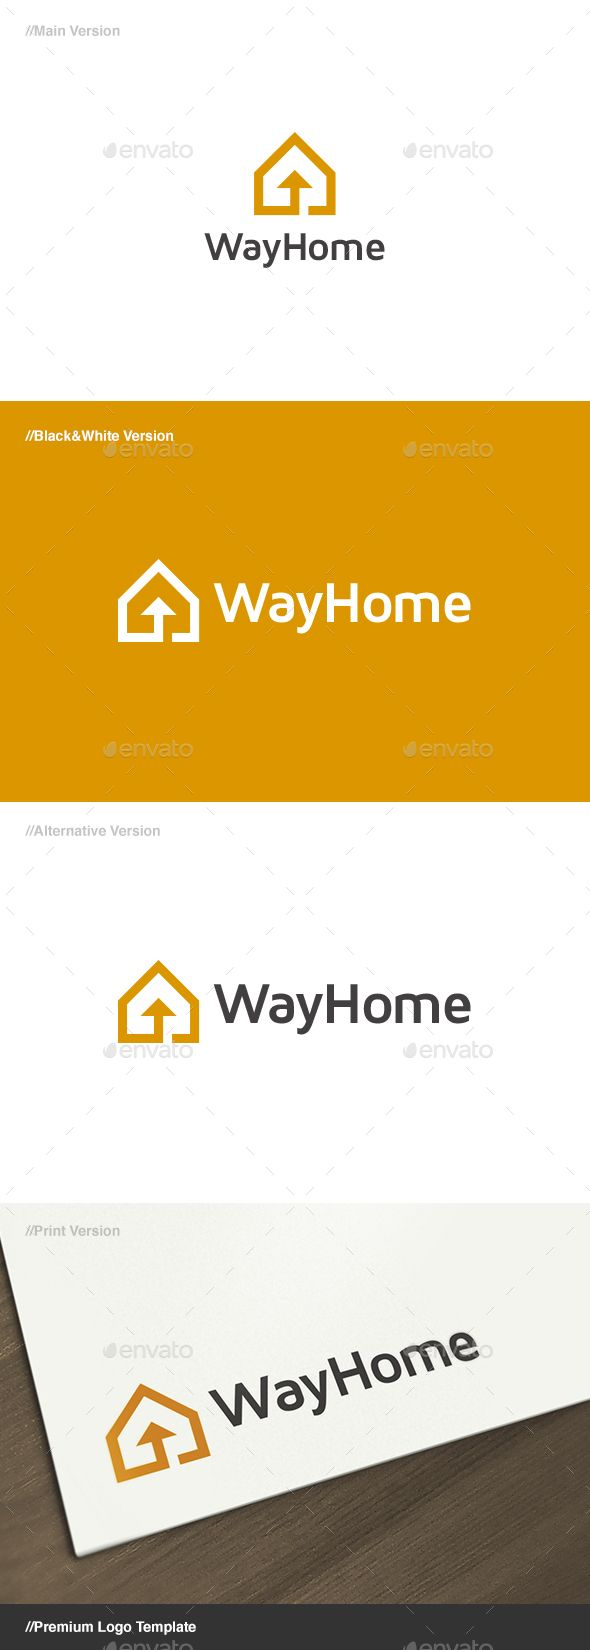 Way Home Logo Template Vector EPS, AI Illustrator. Download here: http://graphicriver.net/item/way-home-logo/15831235?ref=ksioks